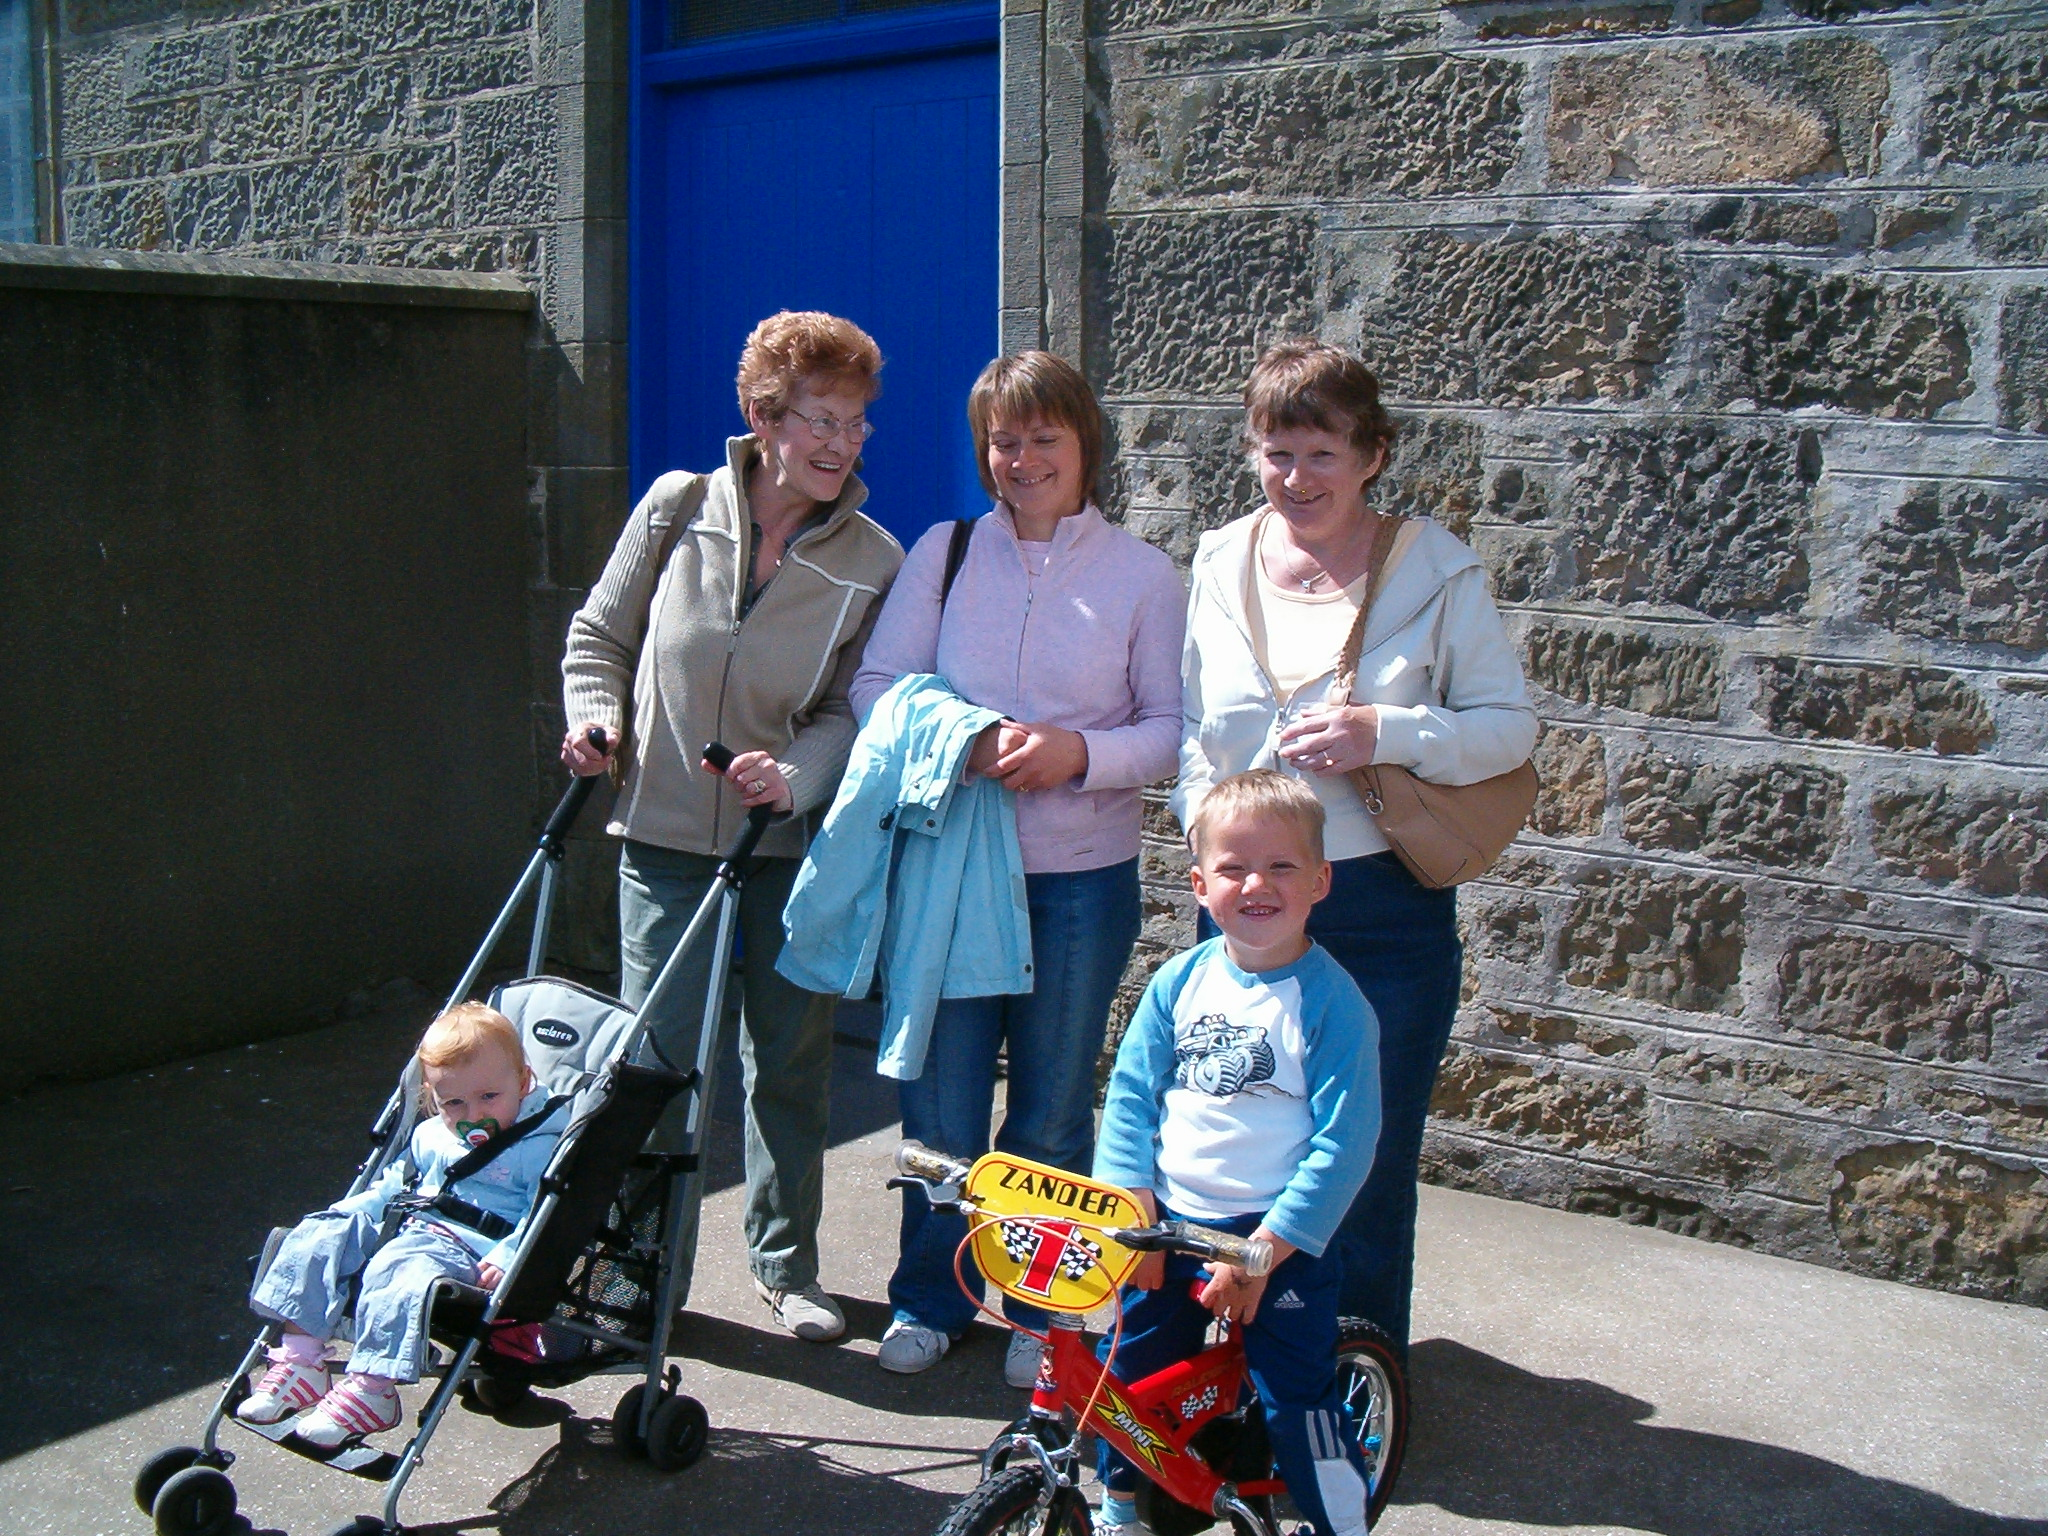 2008 - Jessie Bruce, Janice Craib & Helen McPherson with David & Alexander Craib outside church playschool.